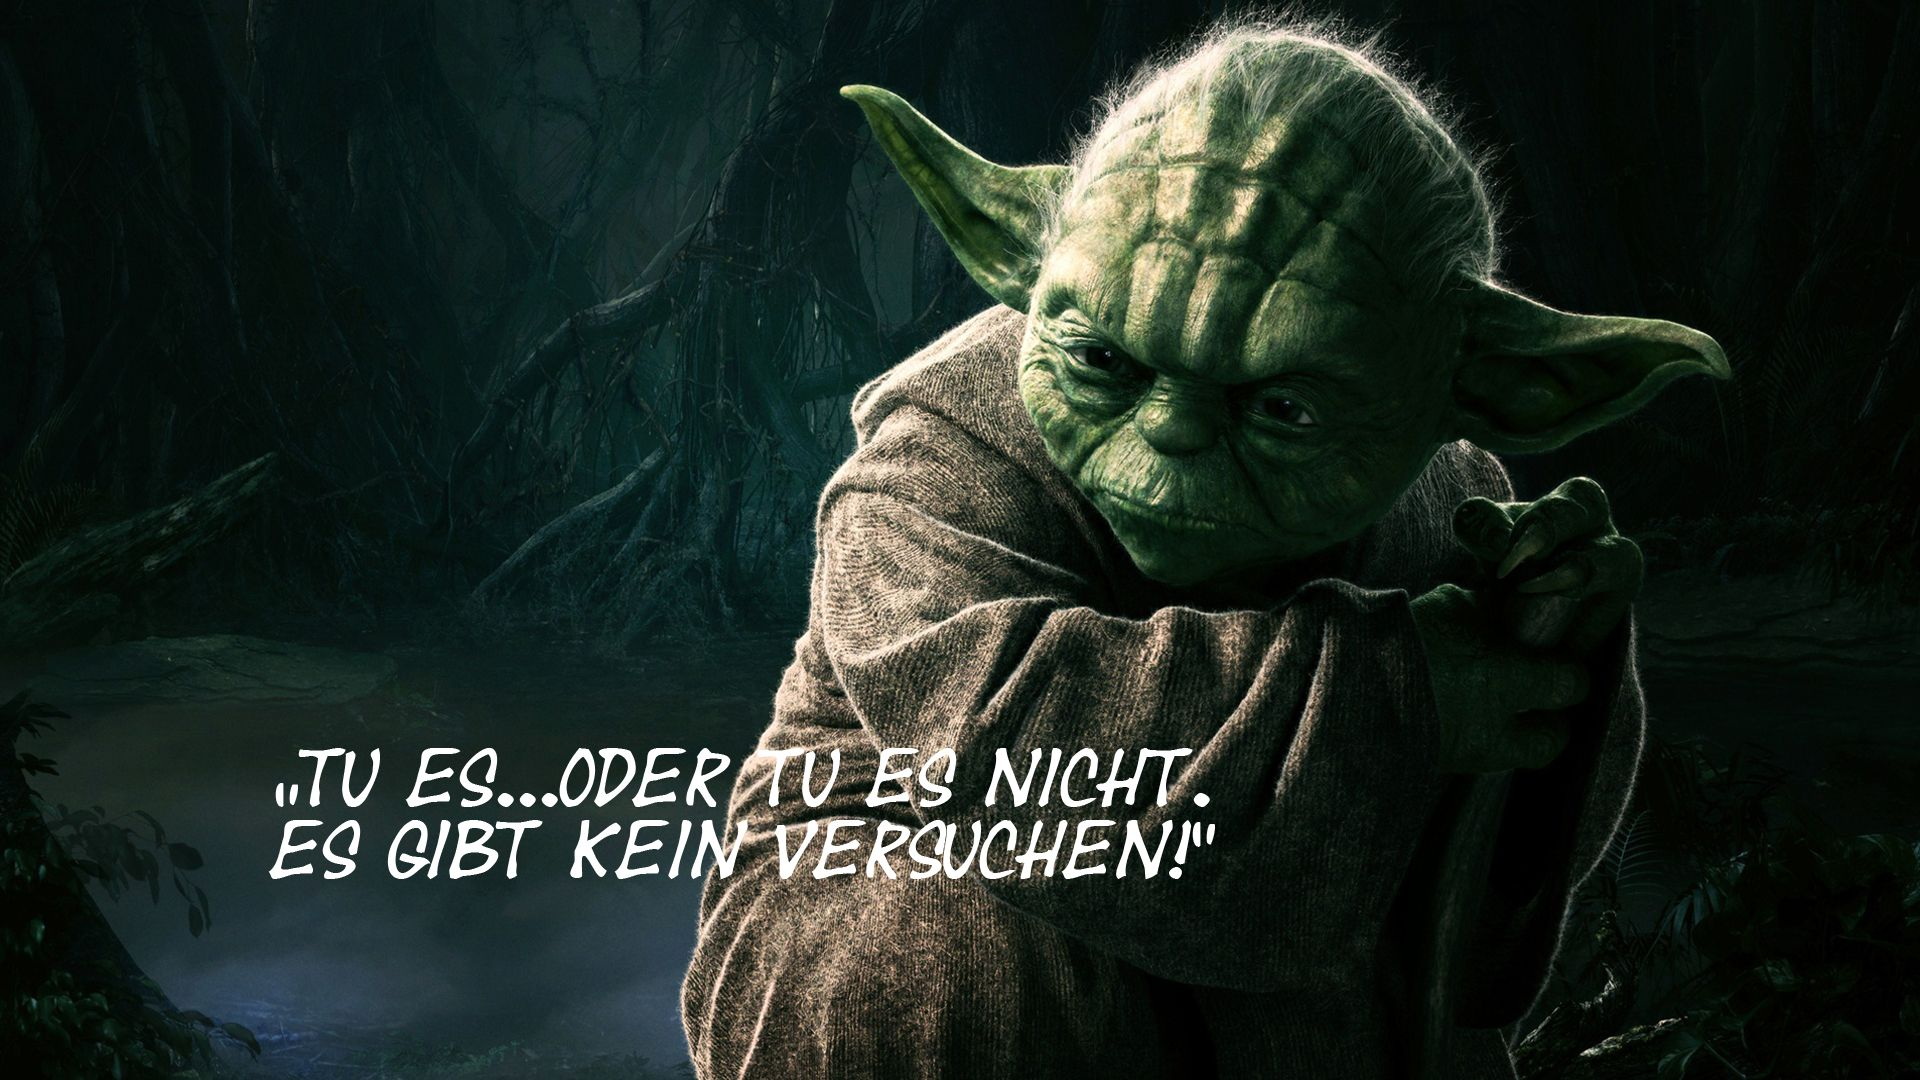 meister yoda zitate pinterest zitat. Black Bedroom Furniture Sets. Home Design Ideas